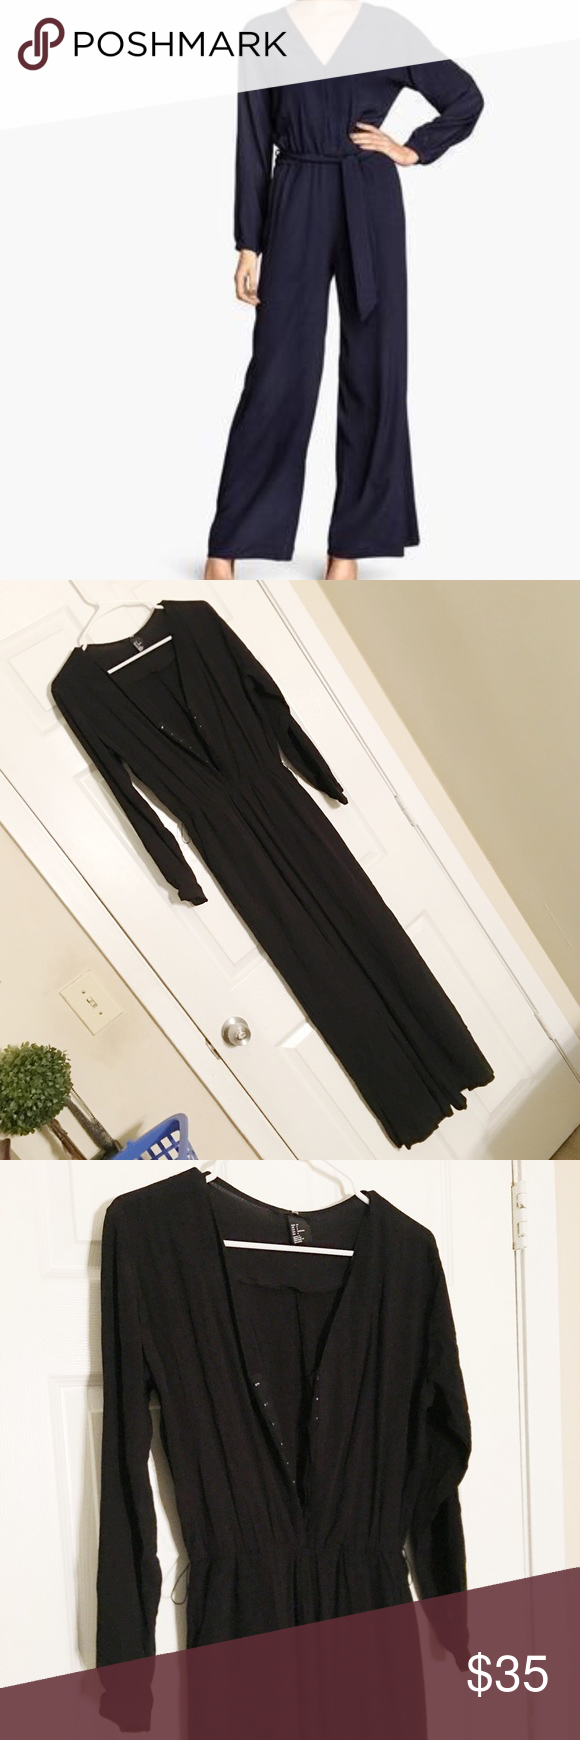 • Wide Leg Jumpsuit • V-neck jumpsuit in woven fabric with wide-cut legs. Side pockets, elastic waist, hook-and-eye fasteners at top, and sleeves with elasticized cuffs. Unlined. • Does not come with belt however any belt can be subbed in. • 100% rayon • no modeling or trades H&M Pants Jumpsuits & Rompers